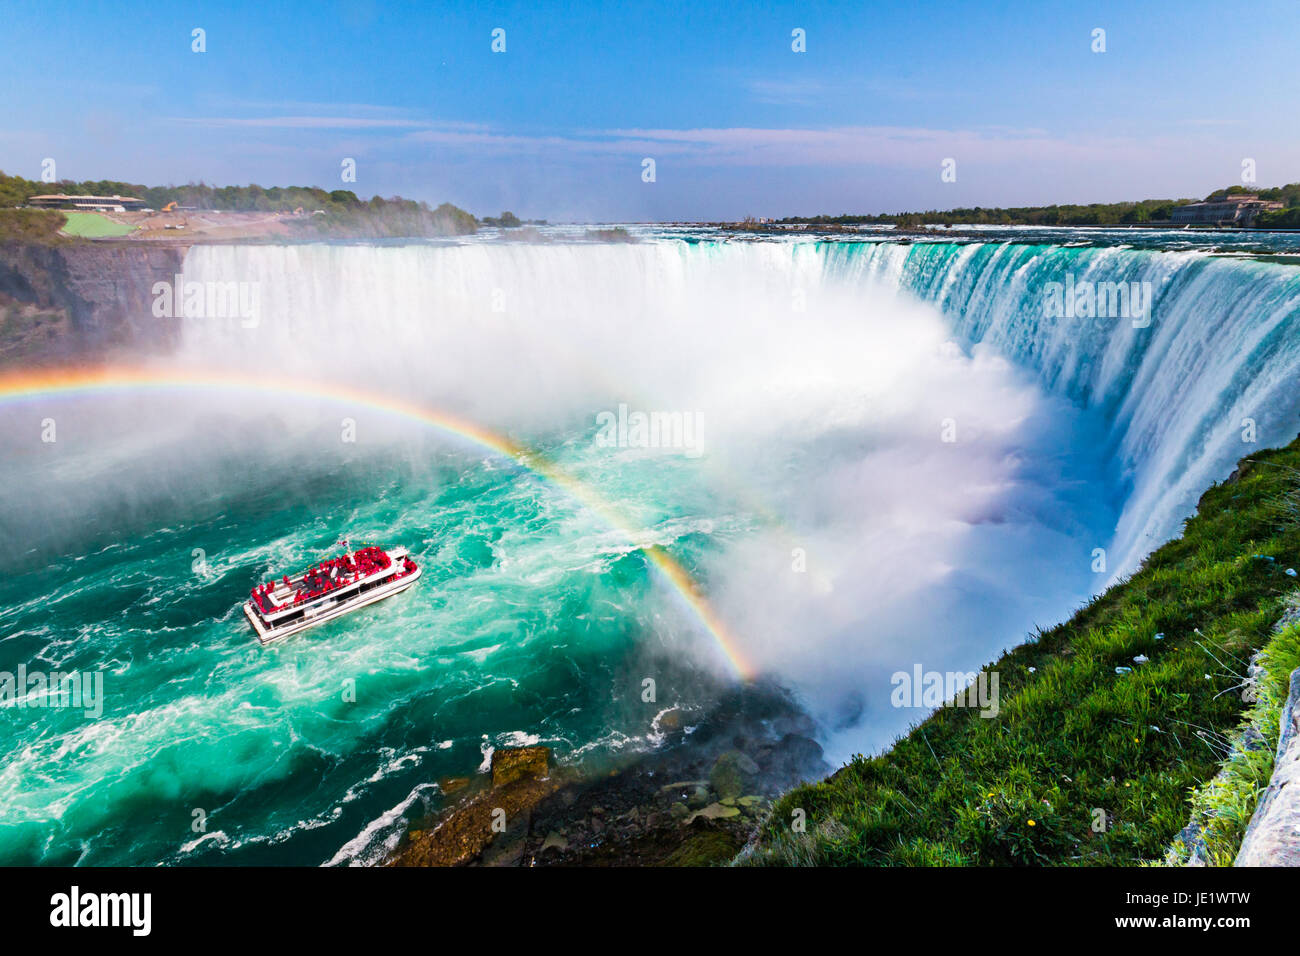 Hornblower Boat Full of Tourists Under Rainbow Sprayed By Horseshoe Waterfall, Niagara Falls, Ontario, Canada - Stock Image